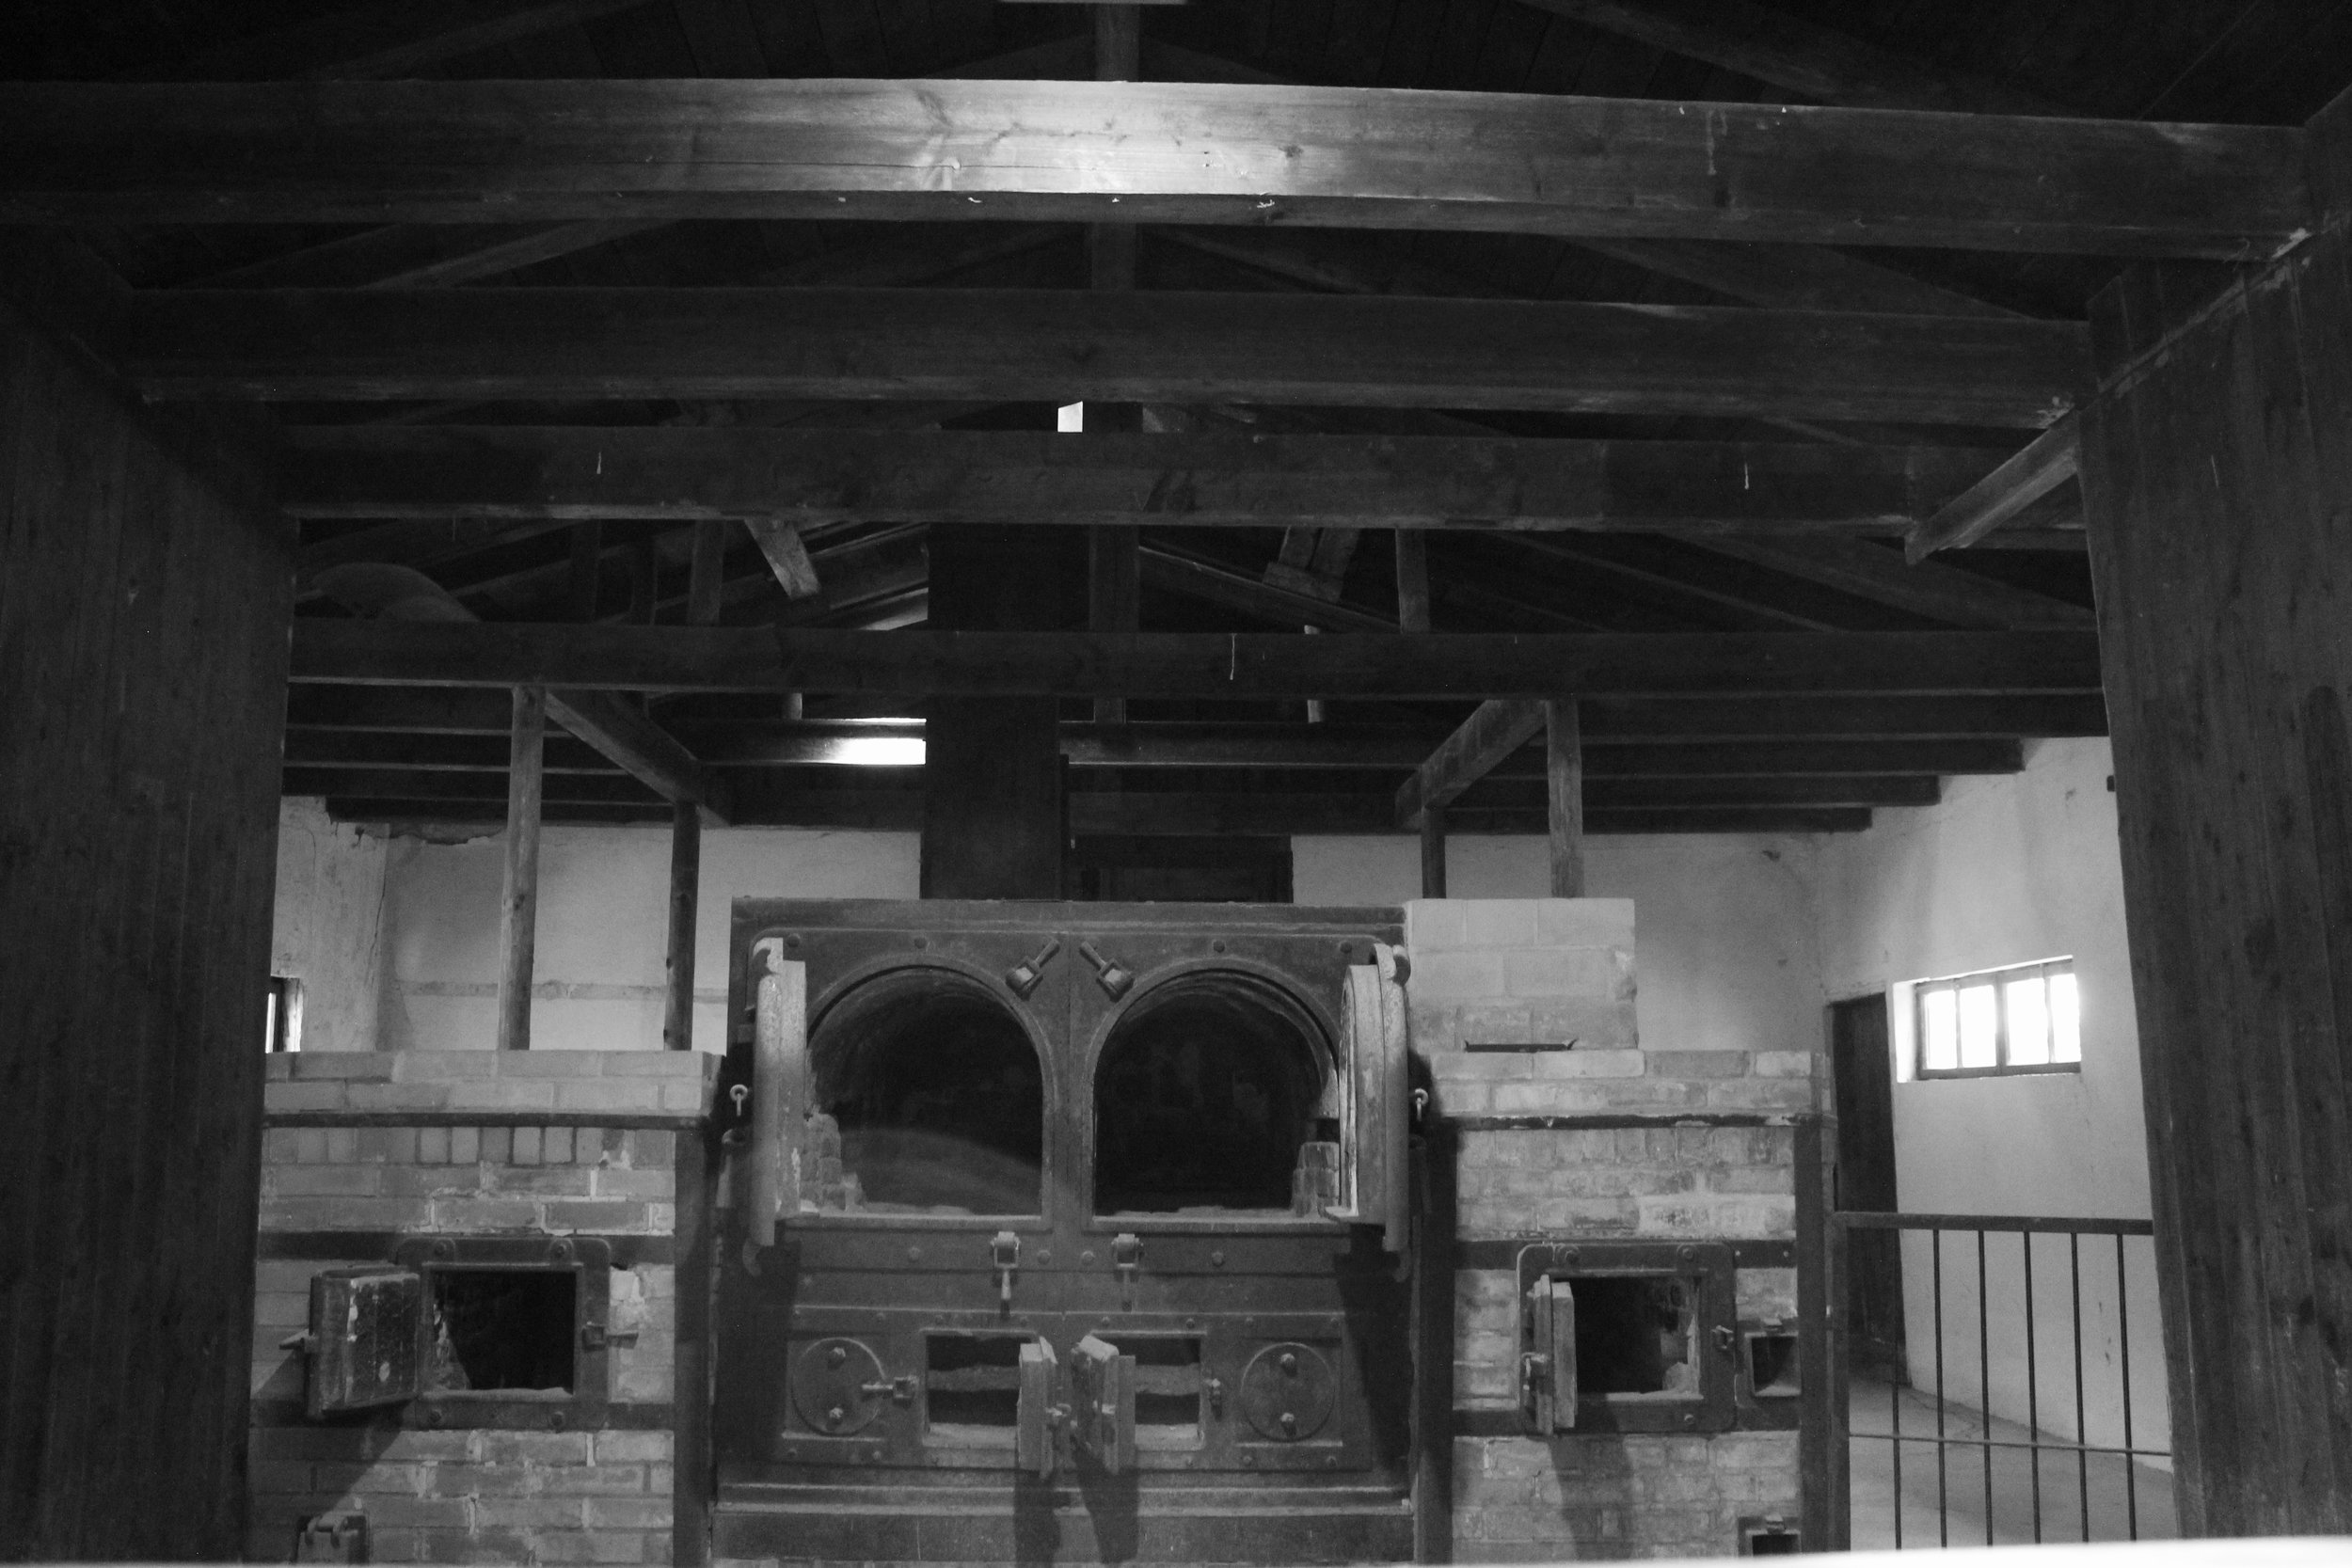 The original crematorium. Prisoners would have job assignments here to burn the other prisoners. When they couldn't do it anymore, they were burned and a new prisoner was assigned the job.